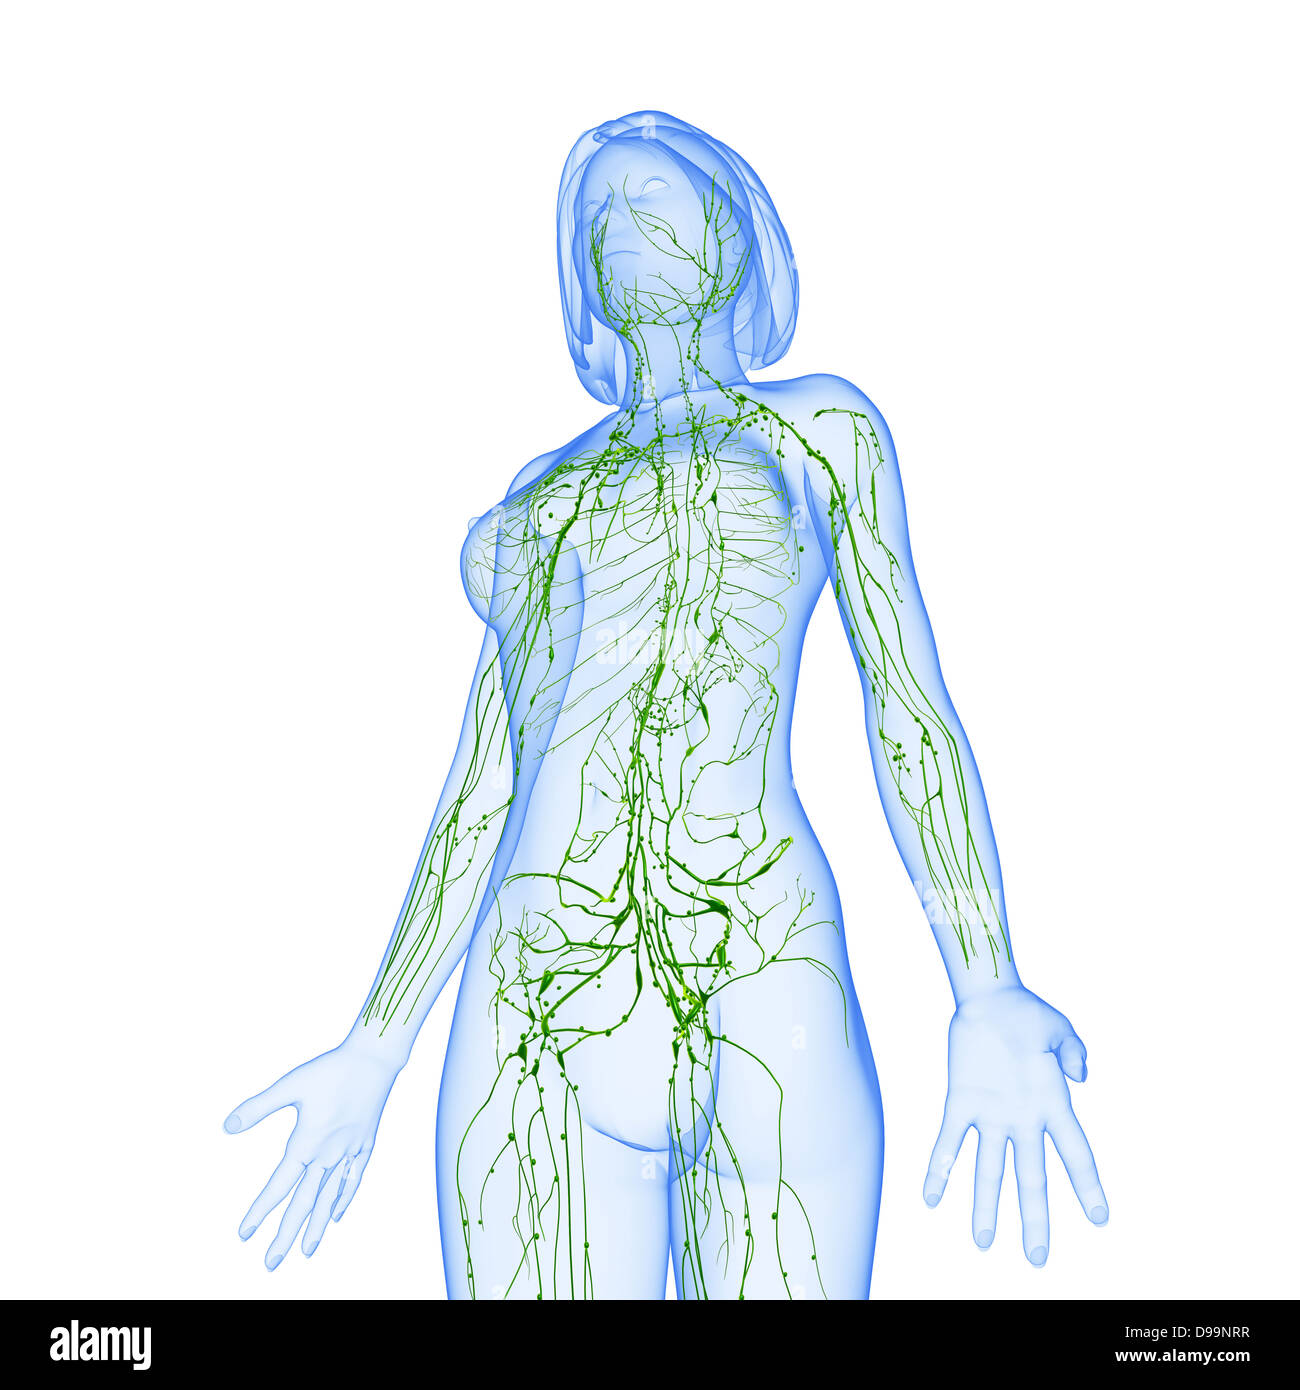 lymphatic system of female body anatomy Stock Photo: 57377707 - Alamy